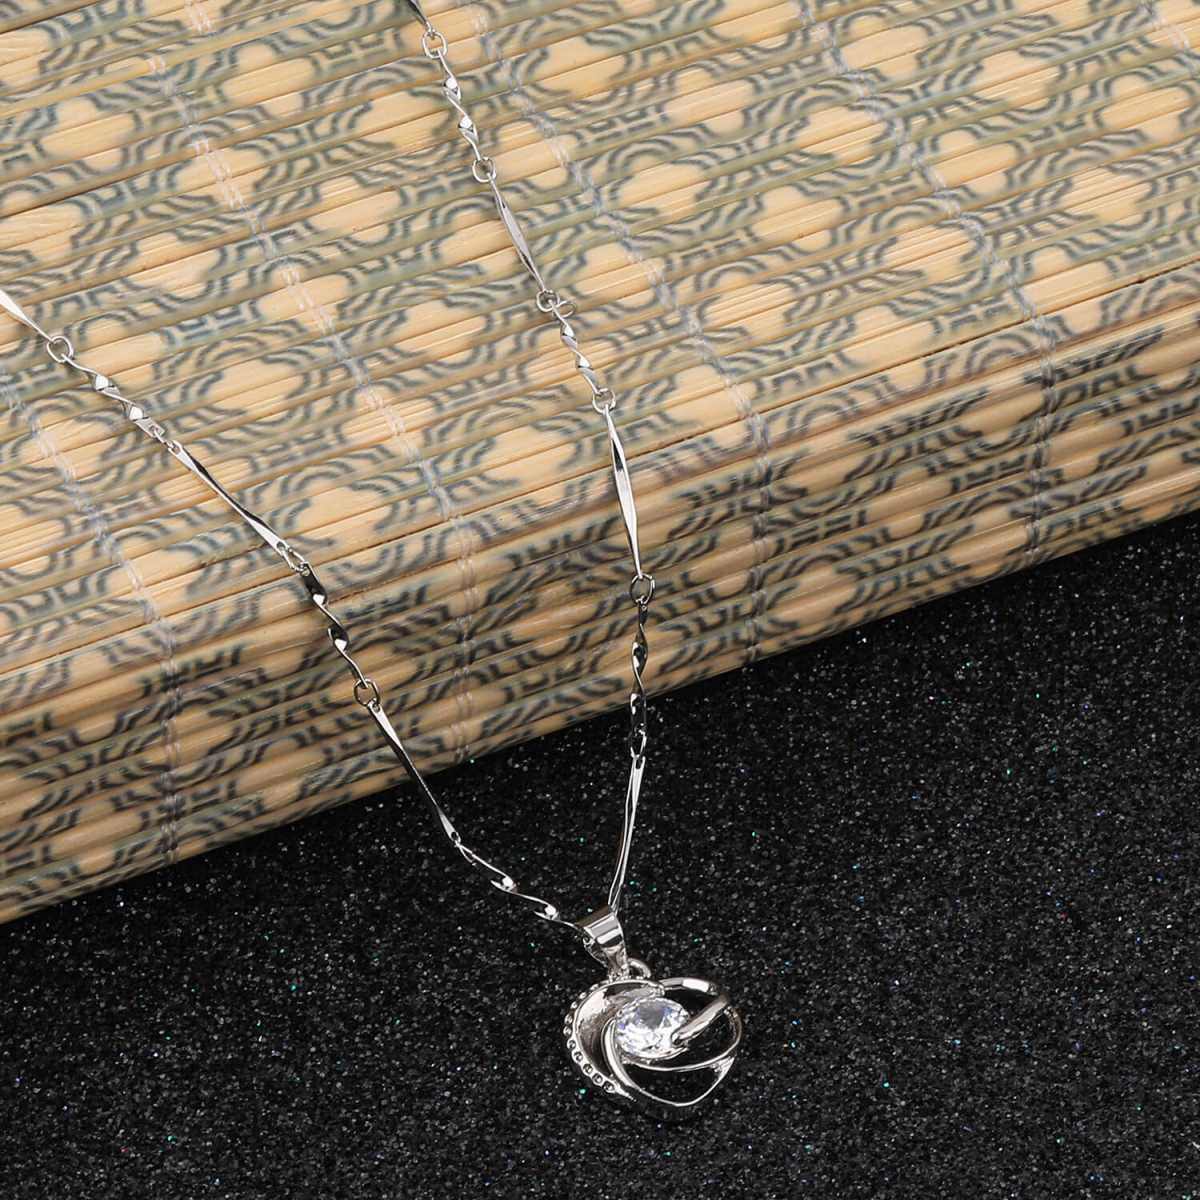 SILVER SHINE Silver Plated Stylish Chain With Heart Shape  Solitaire Diamond Pendant For Women